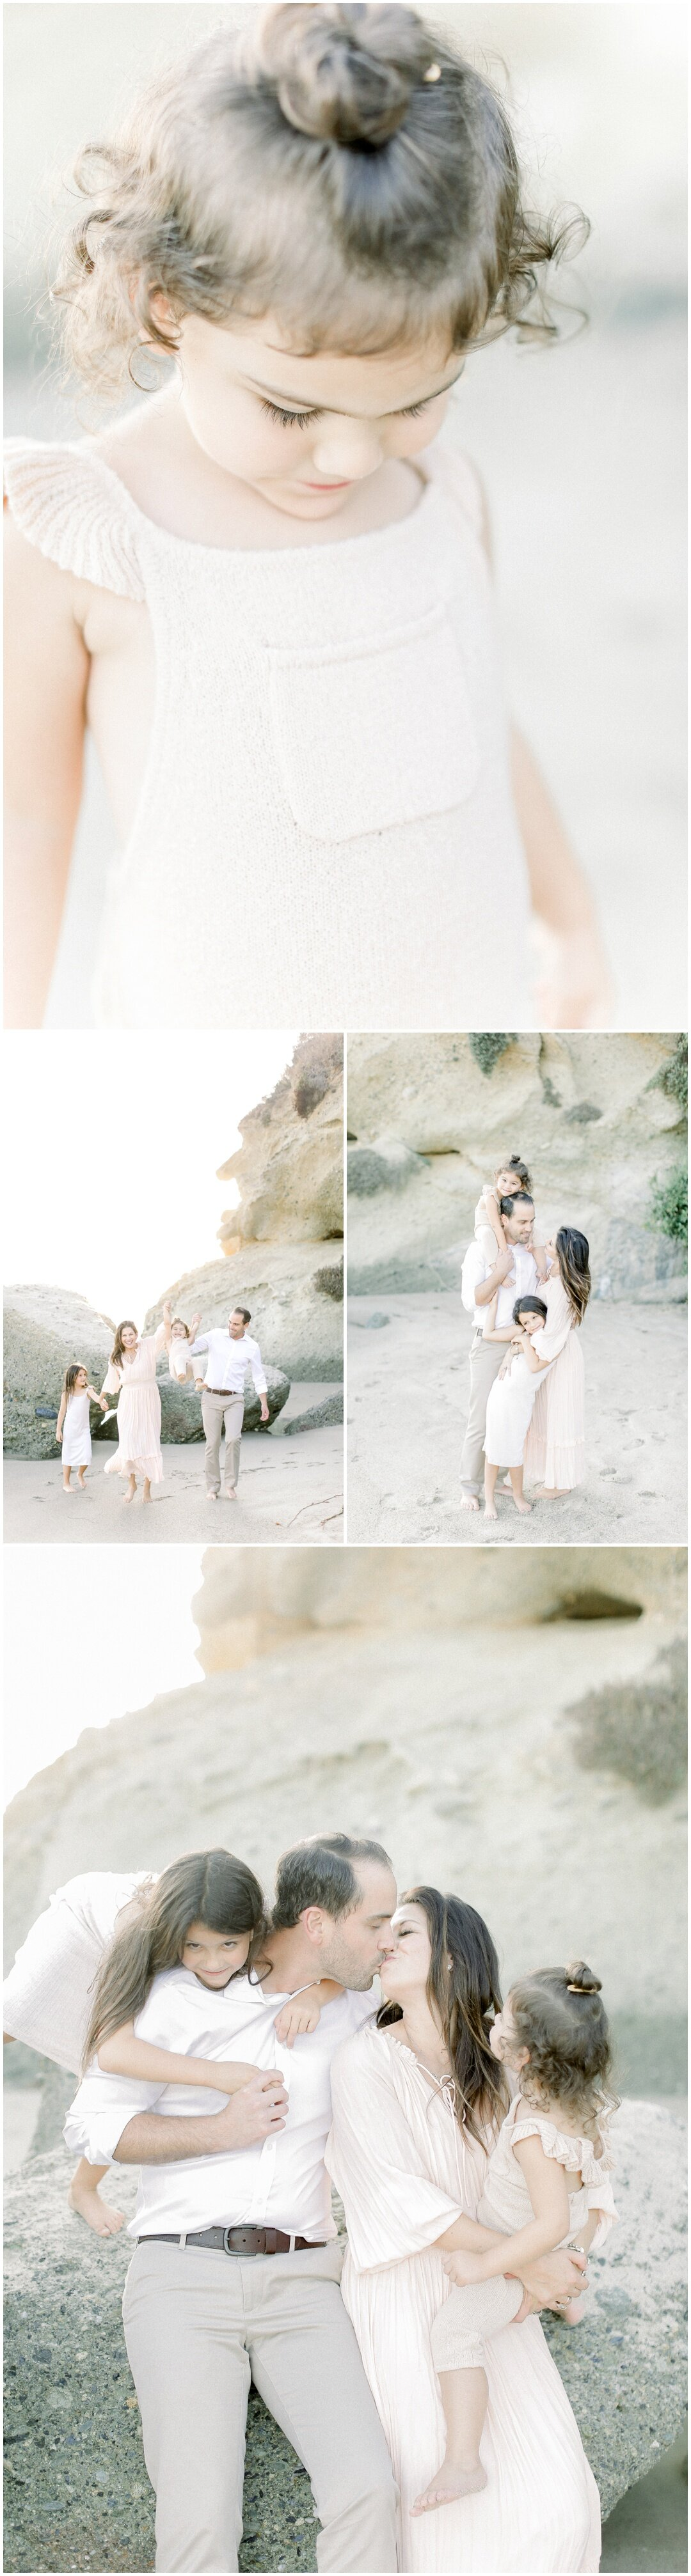 Newport+Beach+Newborn+Maternity+Photographer+Orange+County+Family+Photographer+Cori+Kleckner+Photography+Natalie+Hay+Loretz+Robert+Hay+The+Hay+Family_4444.jpg